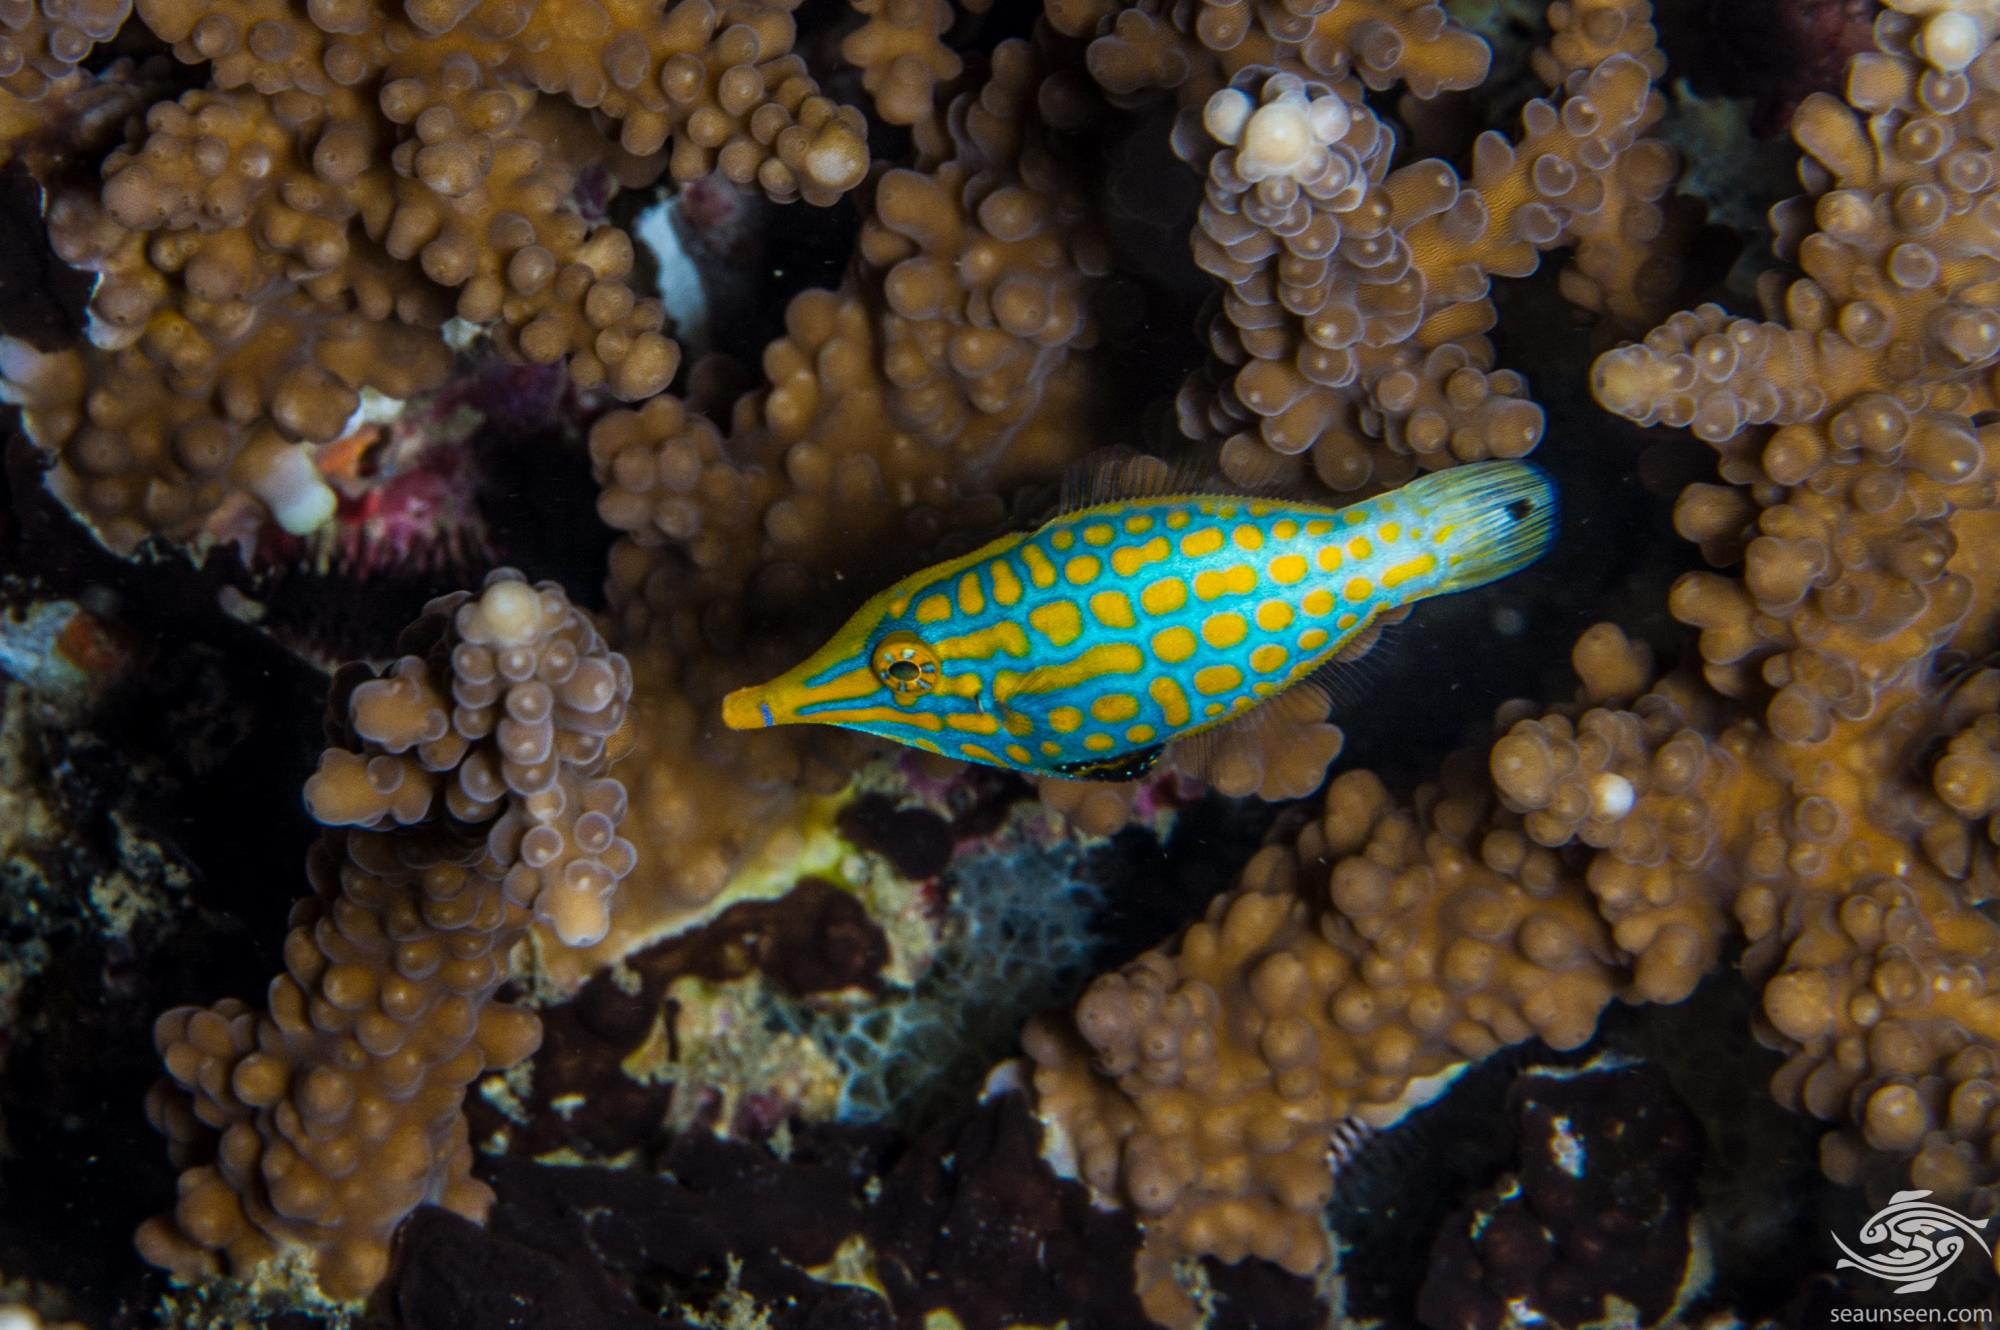 orange spotted filefish or longnose filefish (Oxymonacanthus longirostris)